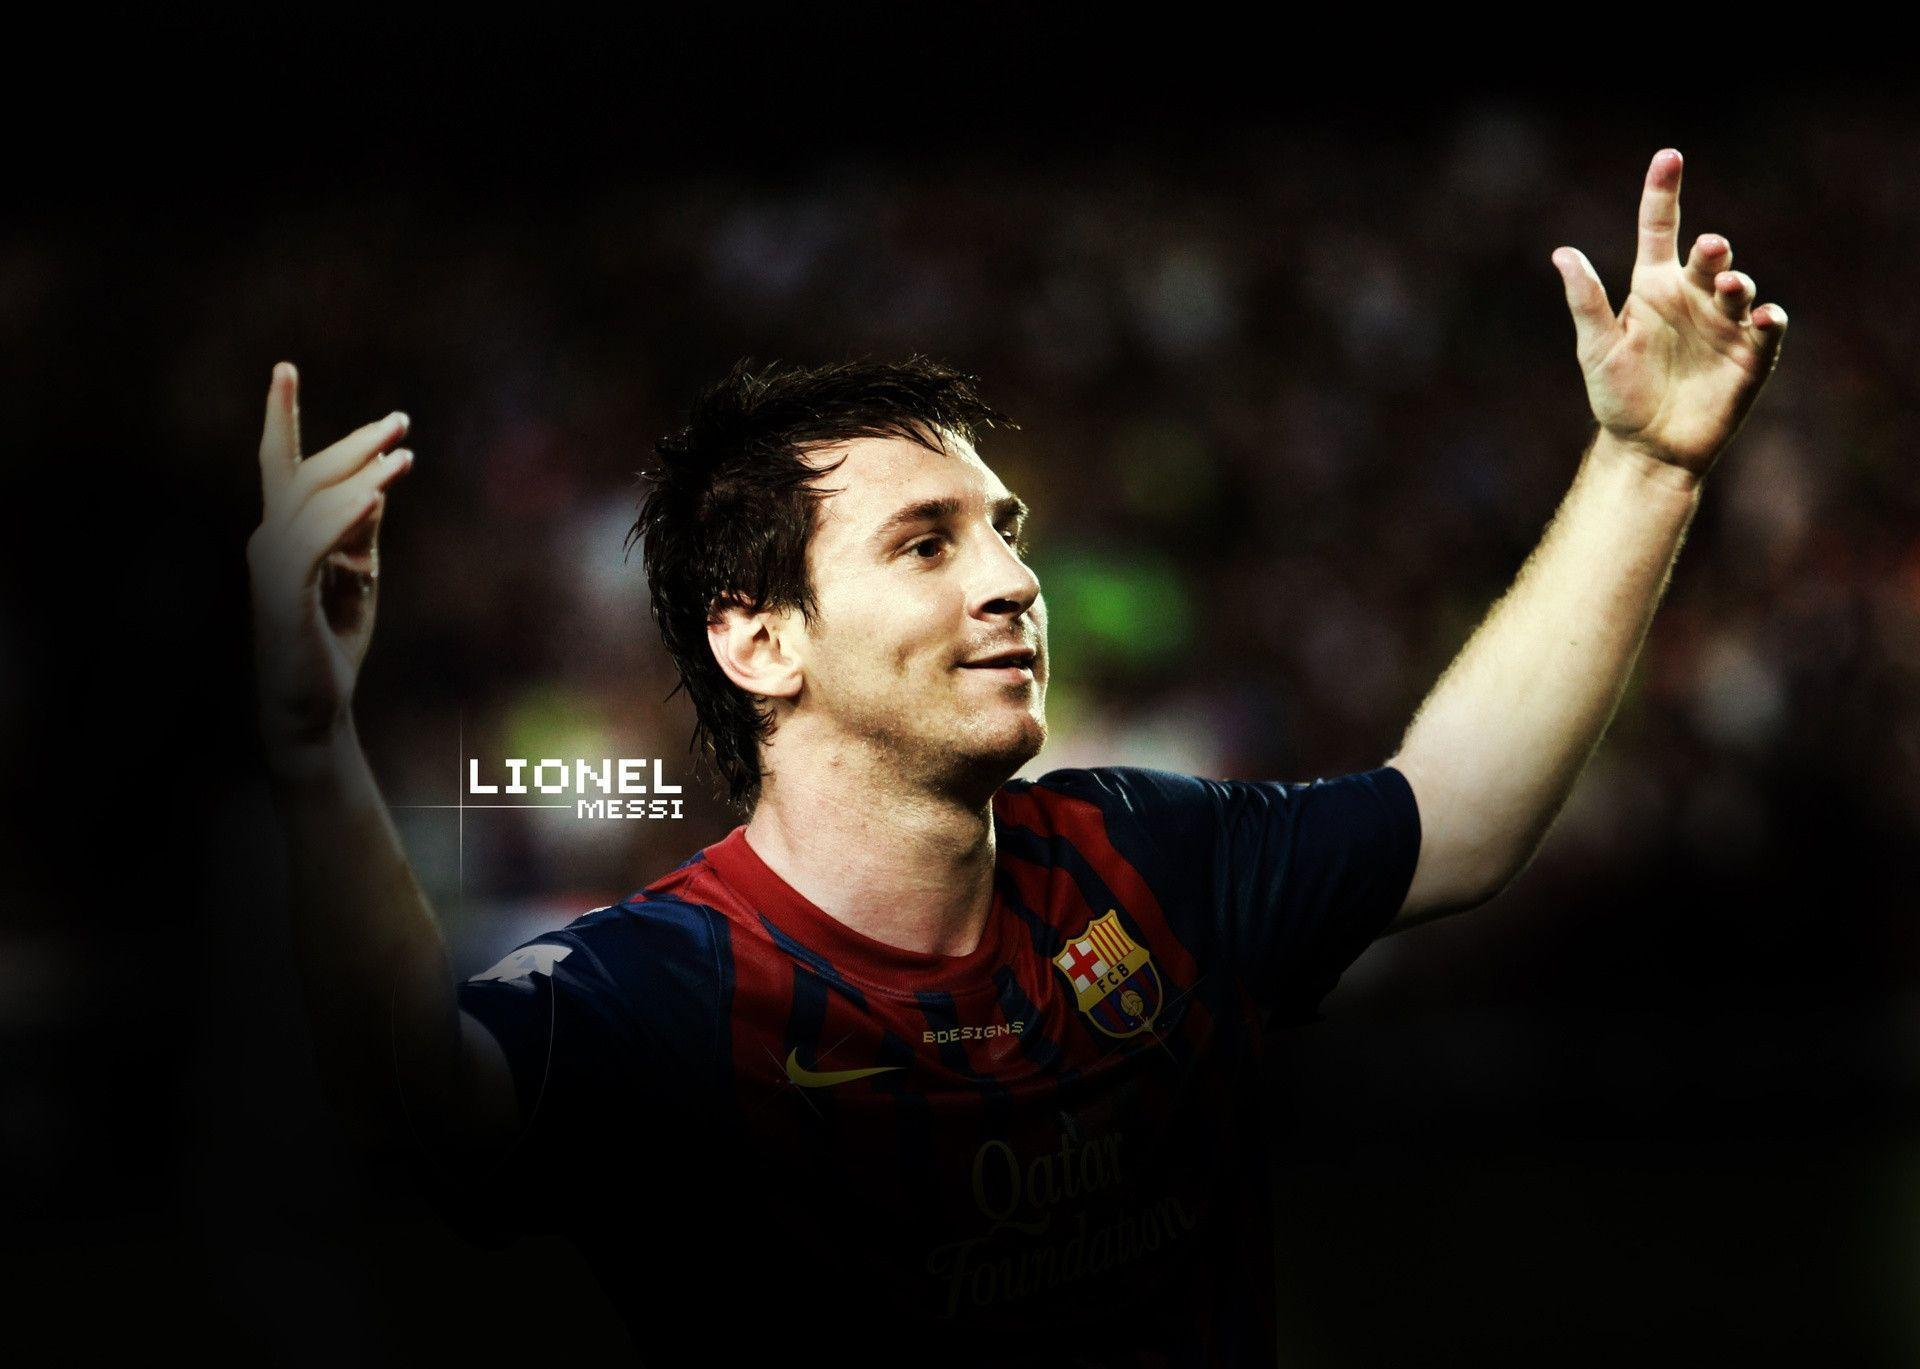 Lionel Messi Barcelona Wallpaper 2013 #916 | TanukinoSippo.